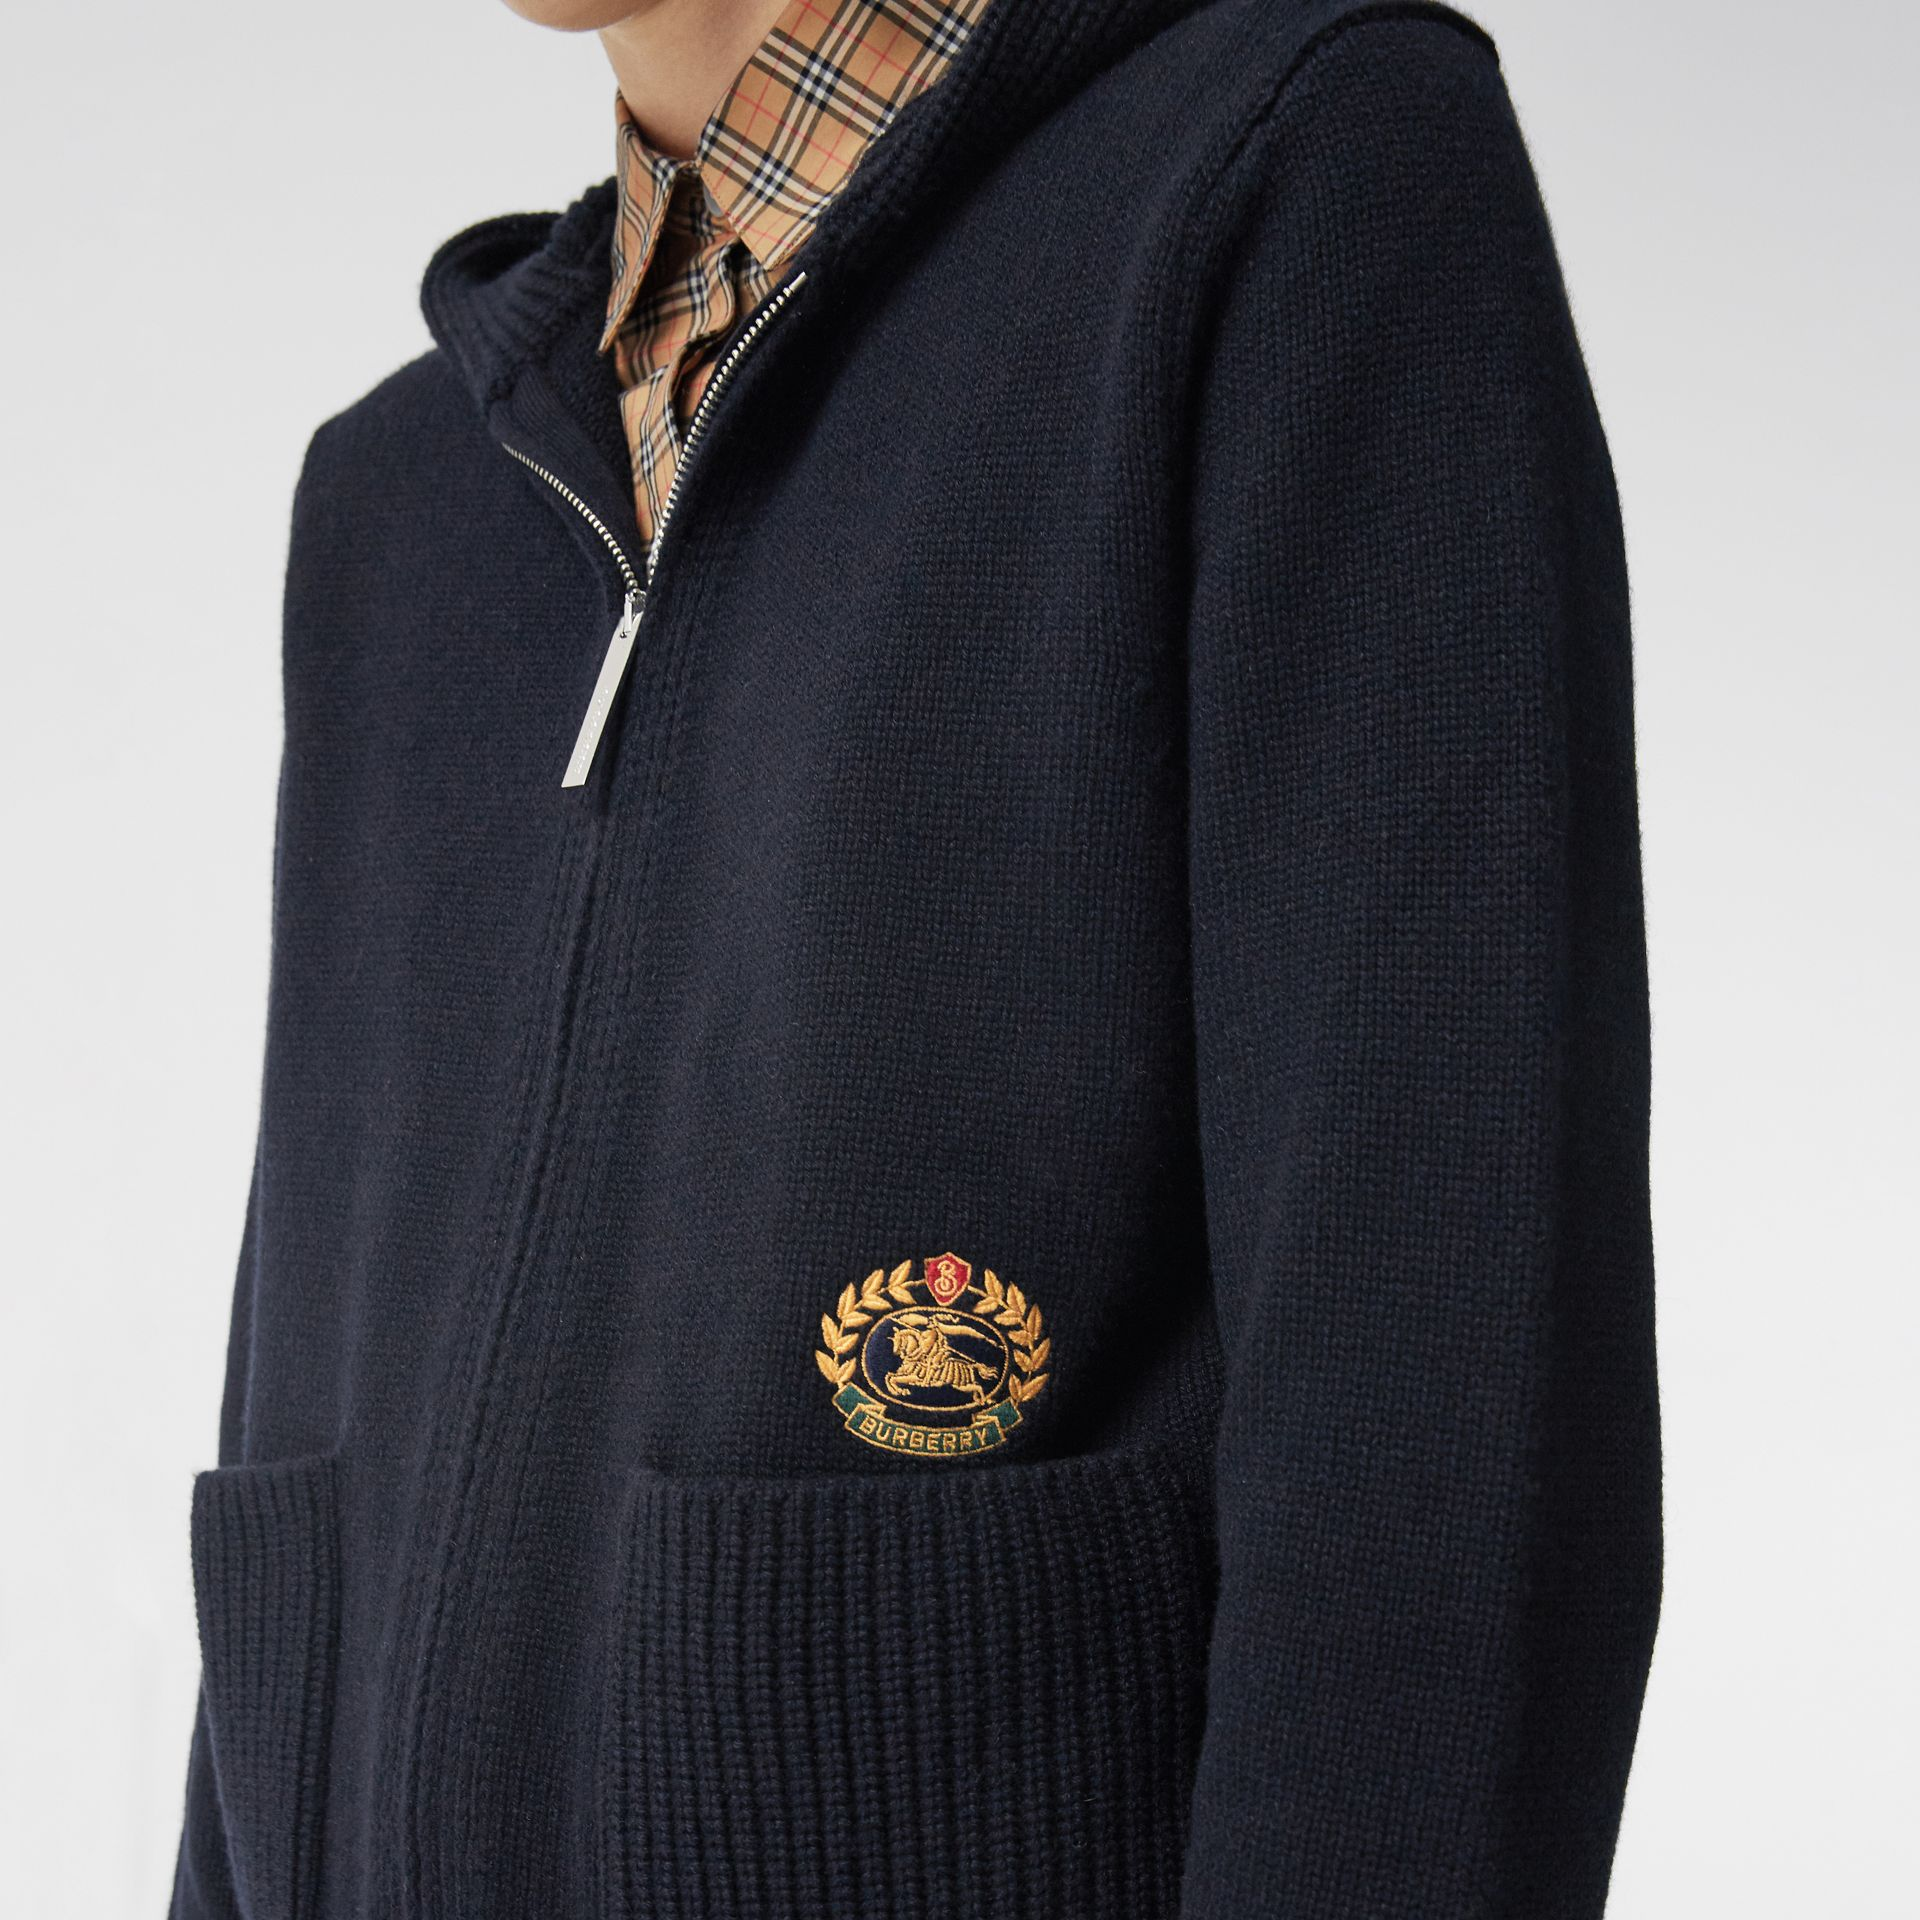 Embroidered Archive Logo Cashmere Hooded Top in Navy - Women | Burberry - gallery image 1